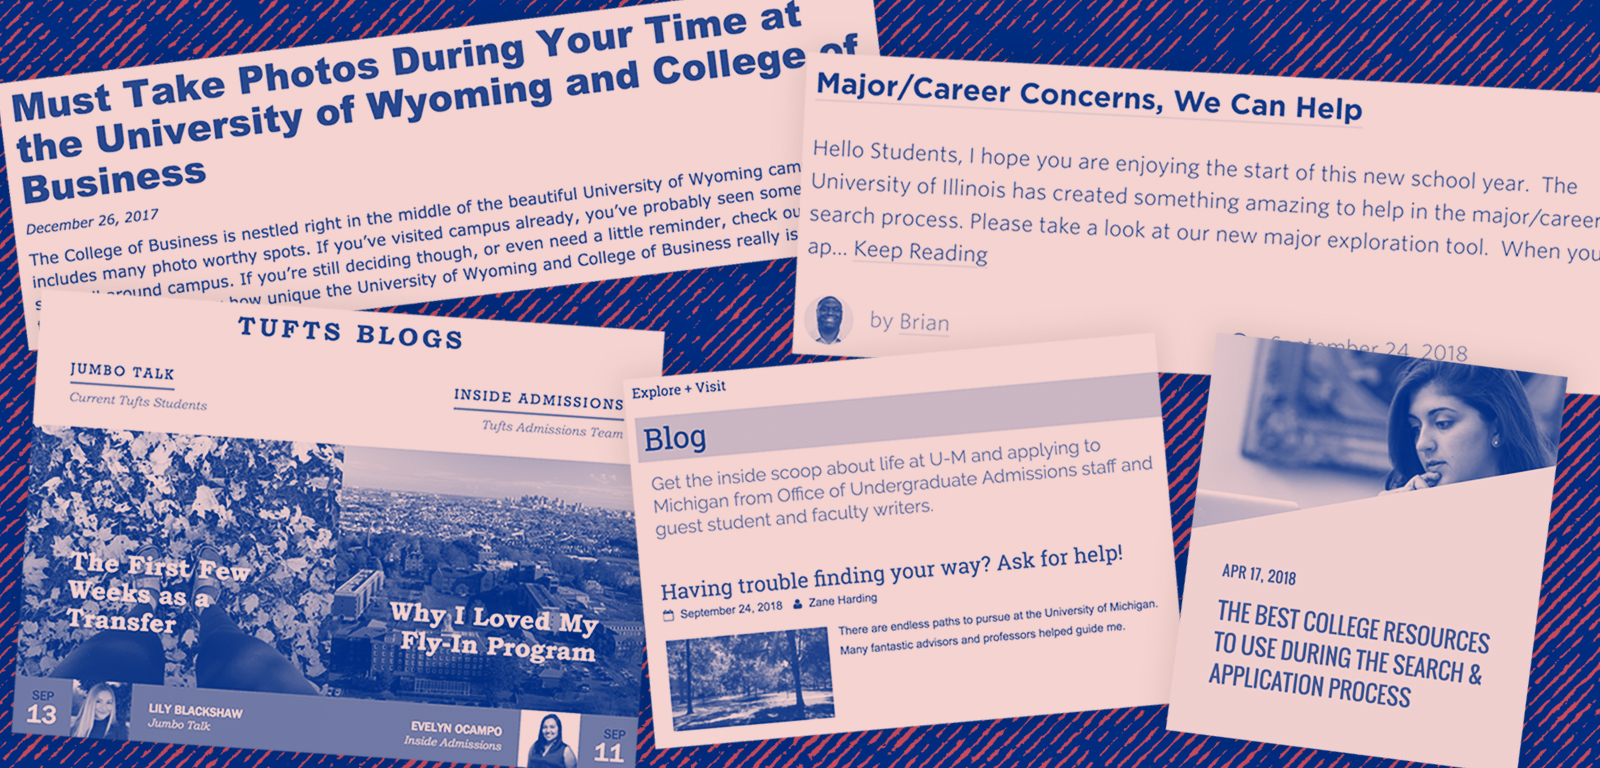 26 (And Counting) Higher Education Blogs Worth Following - Volt